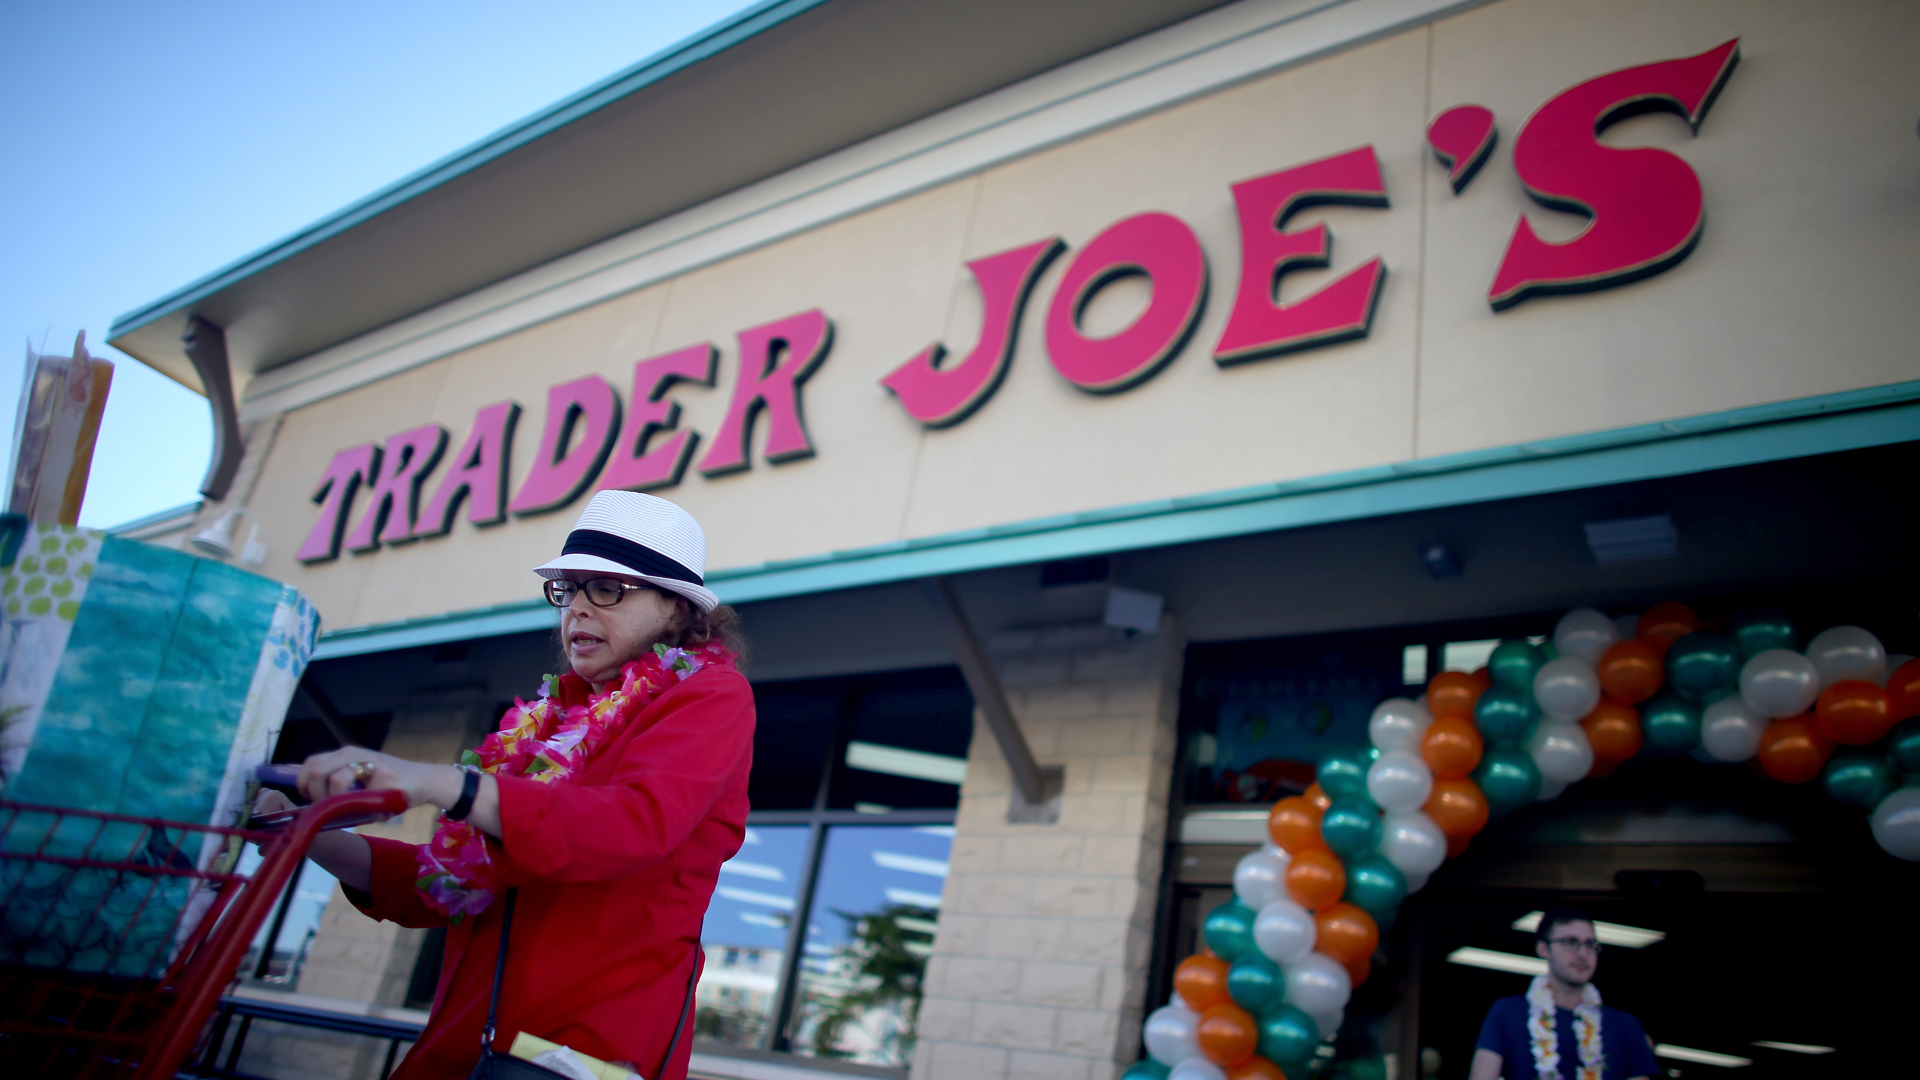 Helaine Goodner exits with her groceries after shopping at the grand opening of a Trader Joe's on October 18, 2013 in Pinecrest, Florida. (Credit: Kena Betancur/Getty Images)